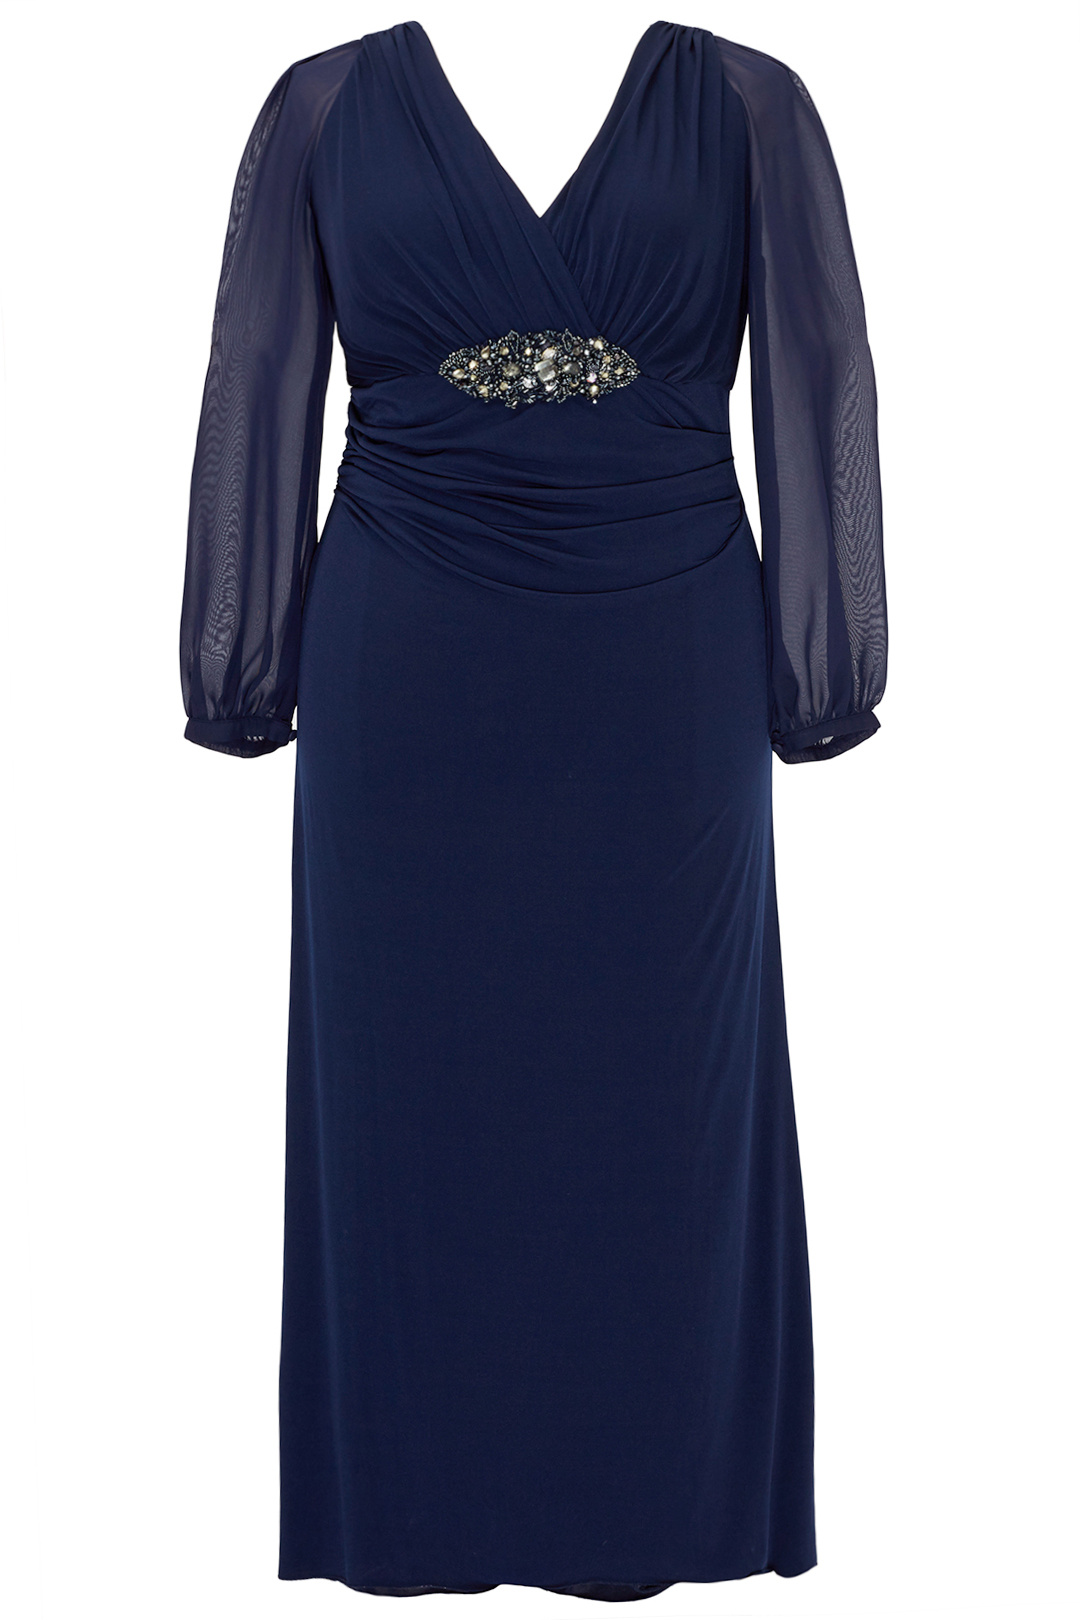 Details about David Meister Blue Women\'s Size 20W Plus Gown Beaded V-Neck  Dress $650- #682